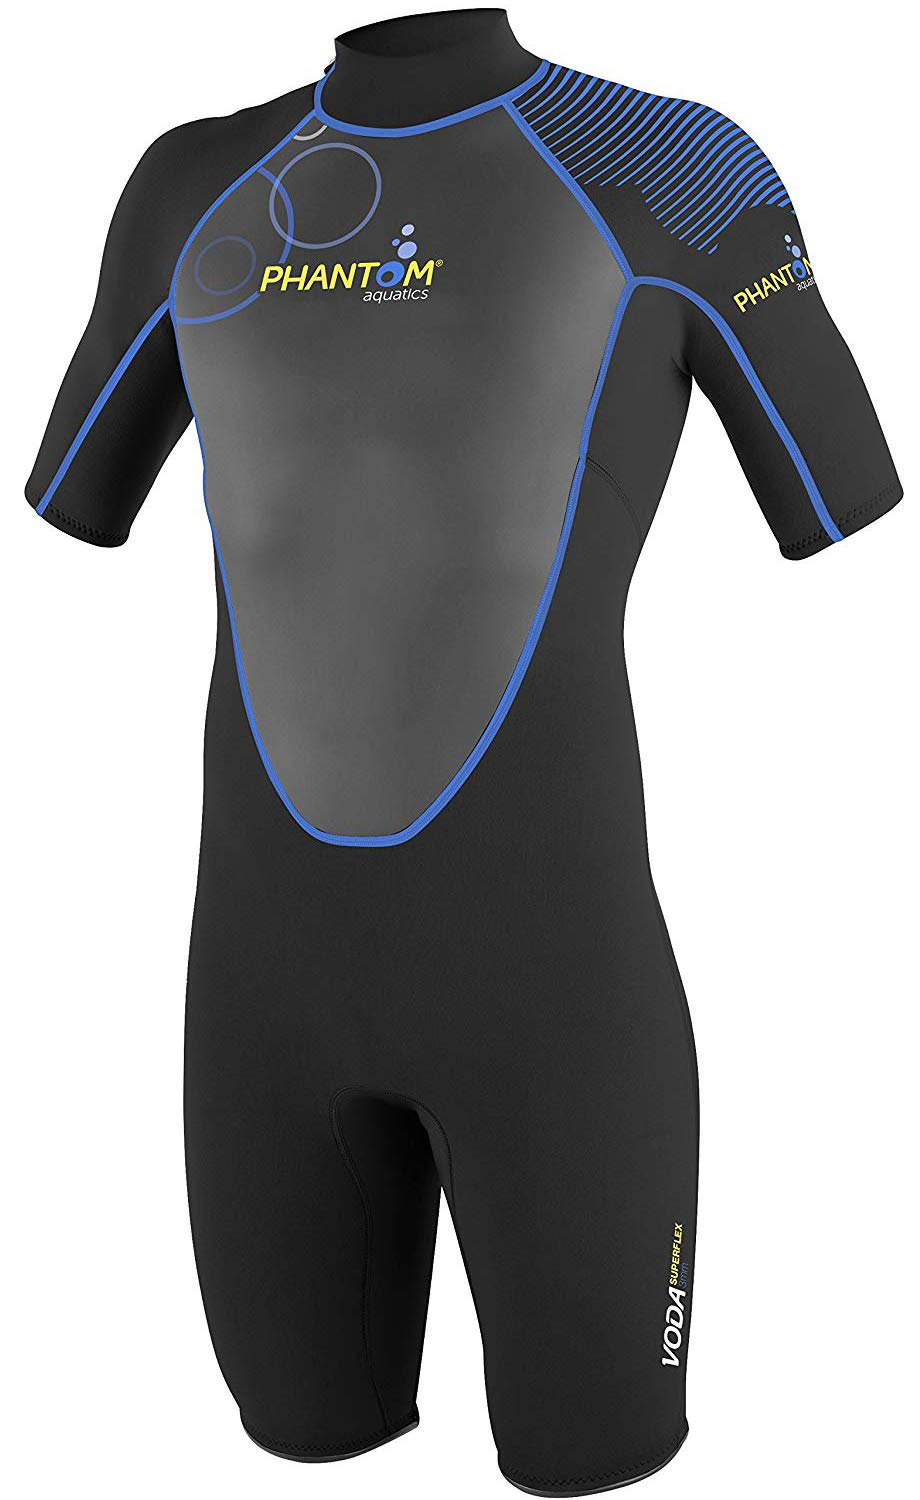 Phantom Aquatics Marine Men's Shorty Wetsuit for Scuba or Snorkeling (Black Blue Voda, Small) by Phantom Aquatics